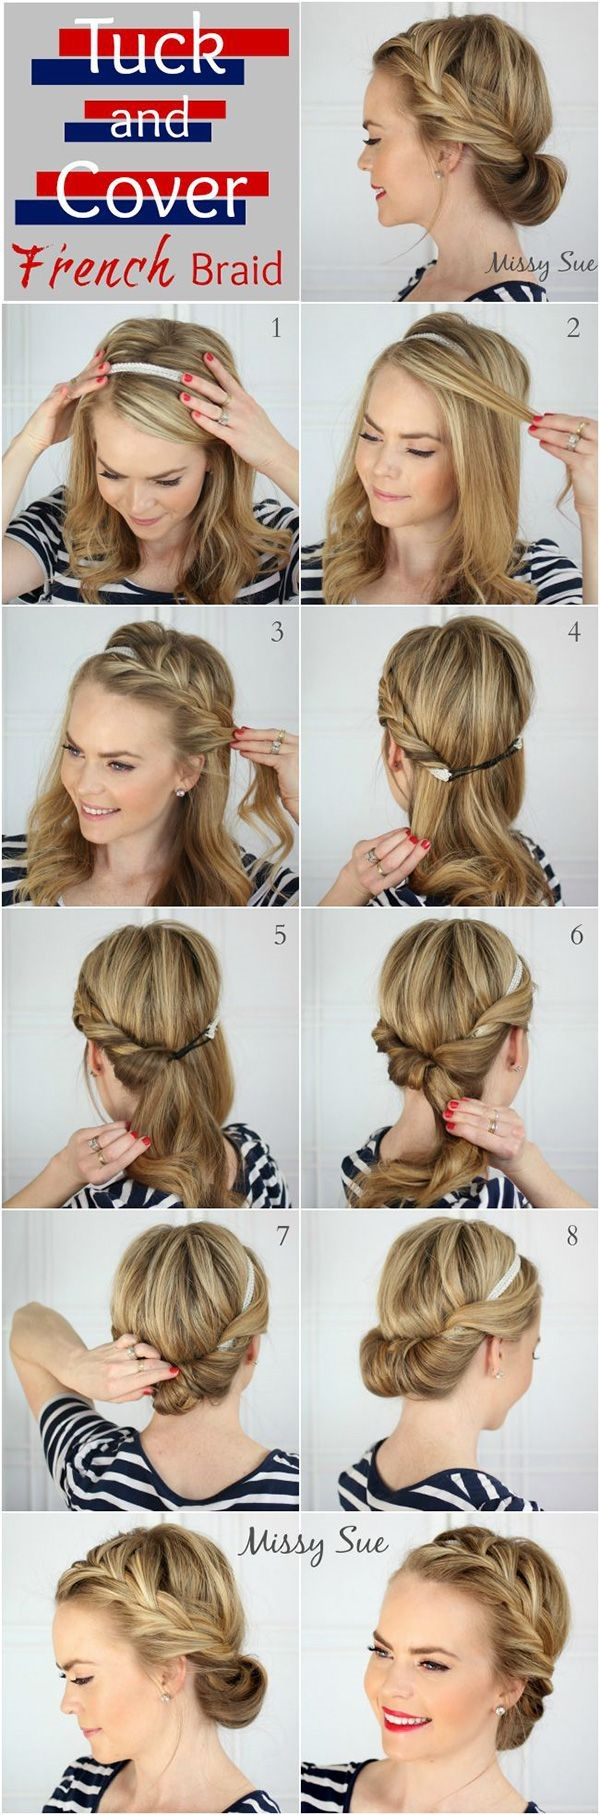 Simple Five Minute Hairstyles (63)